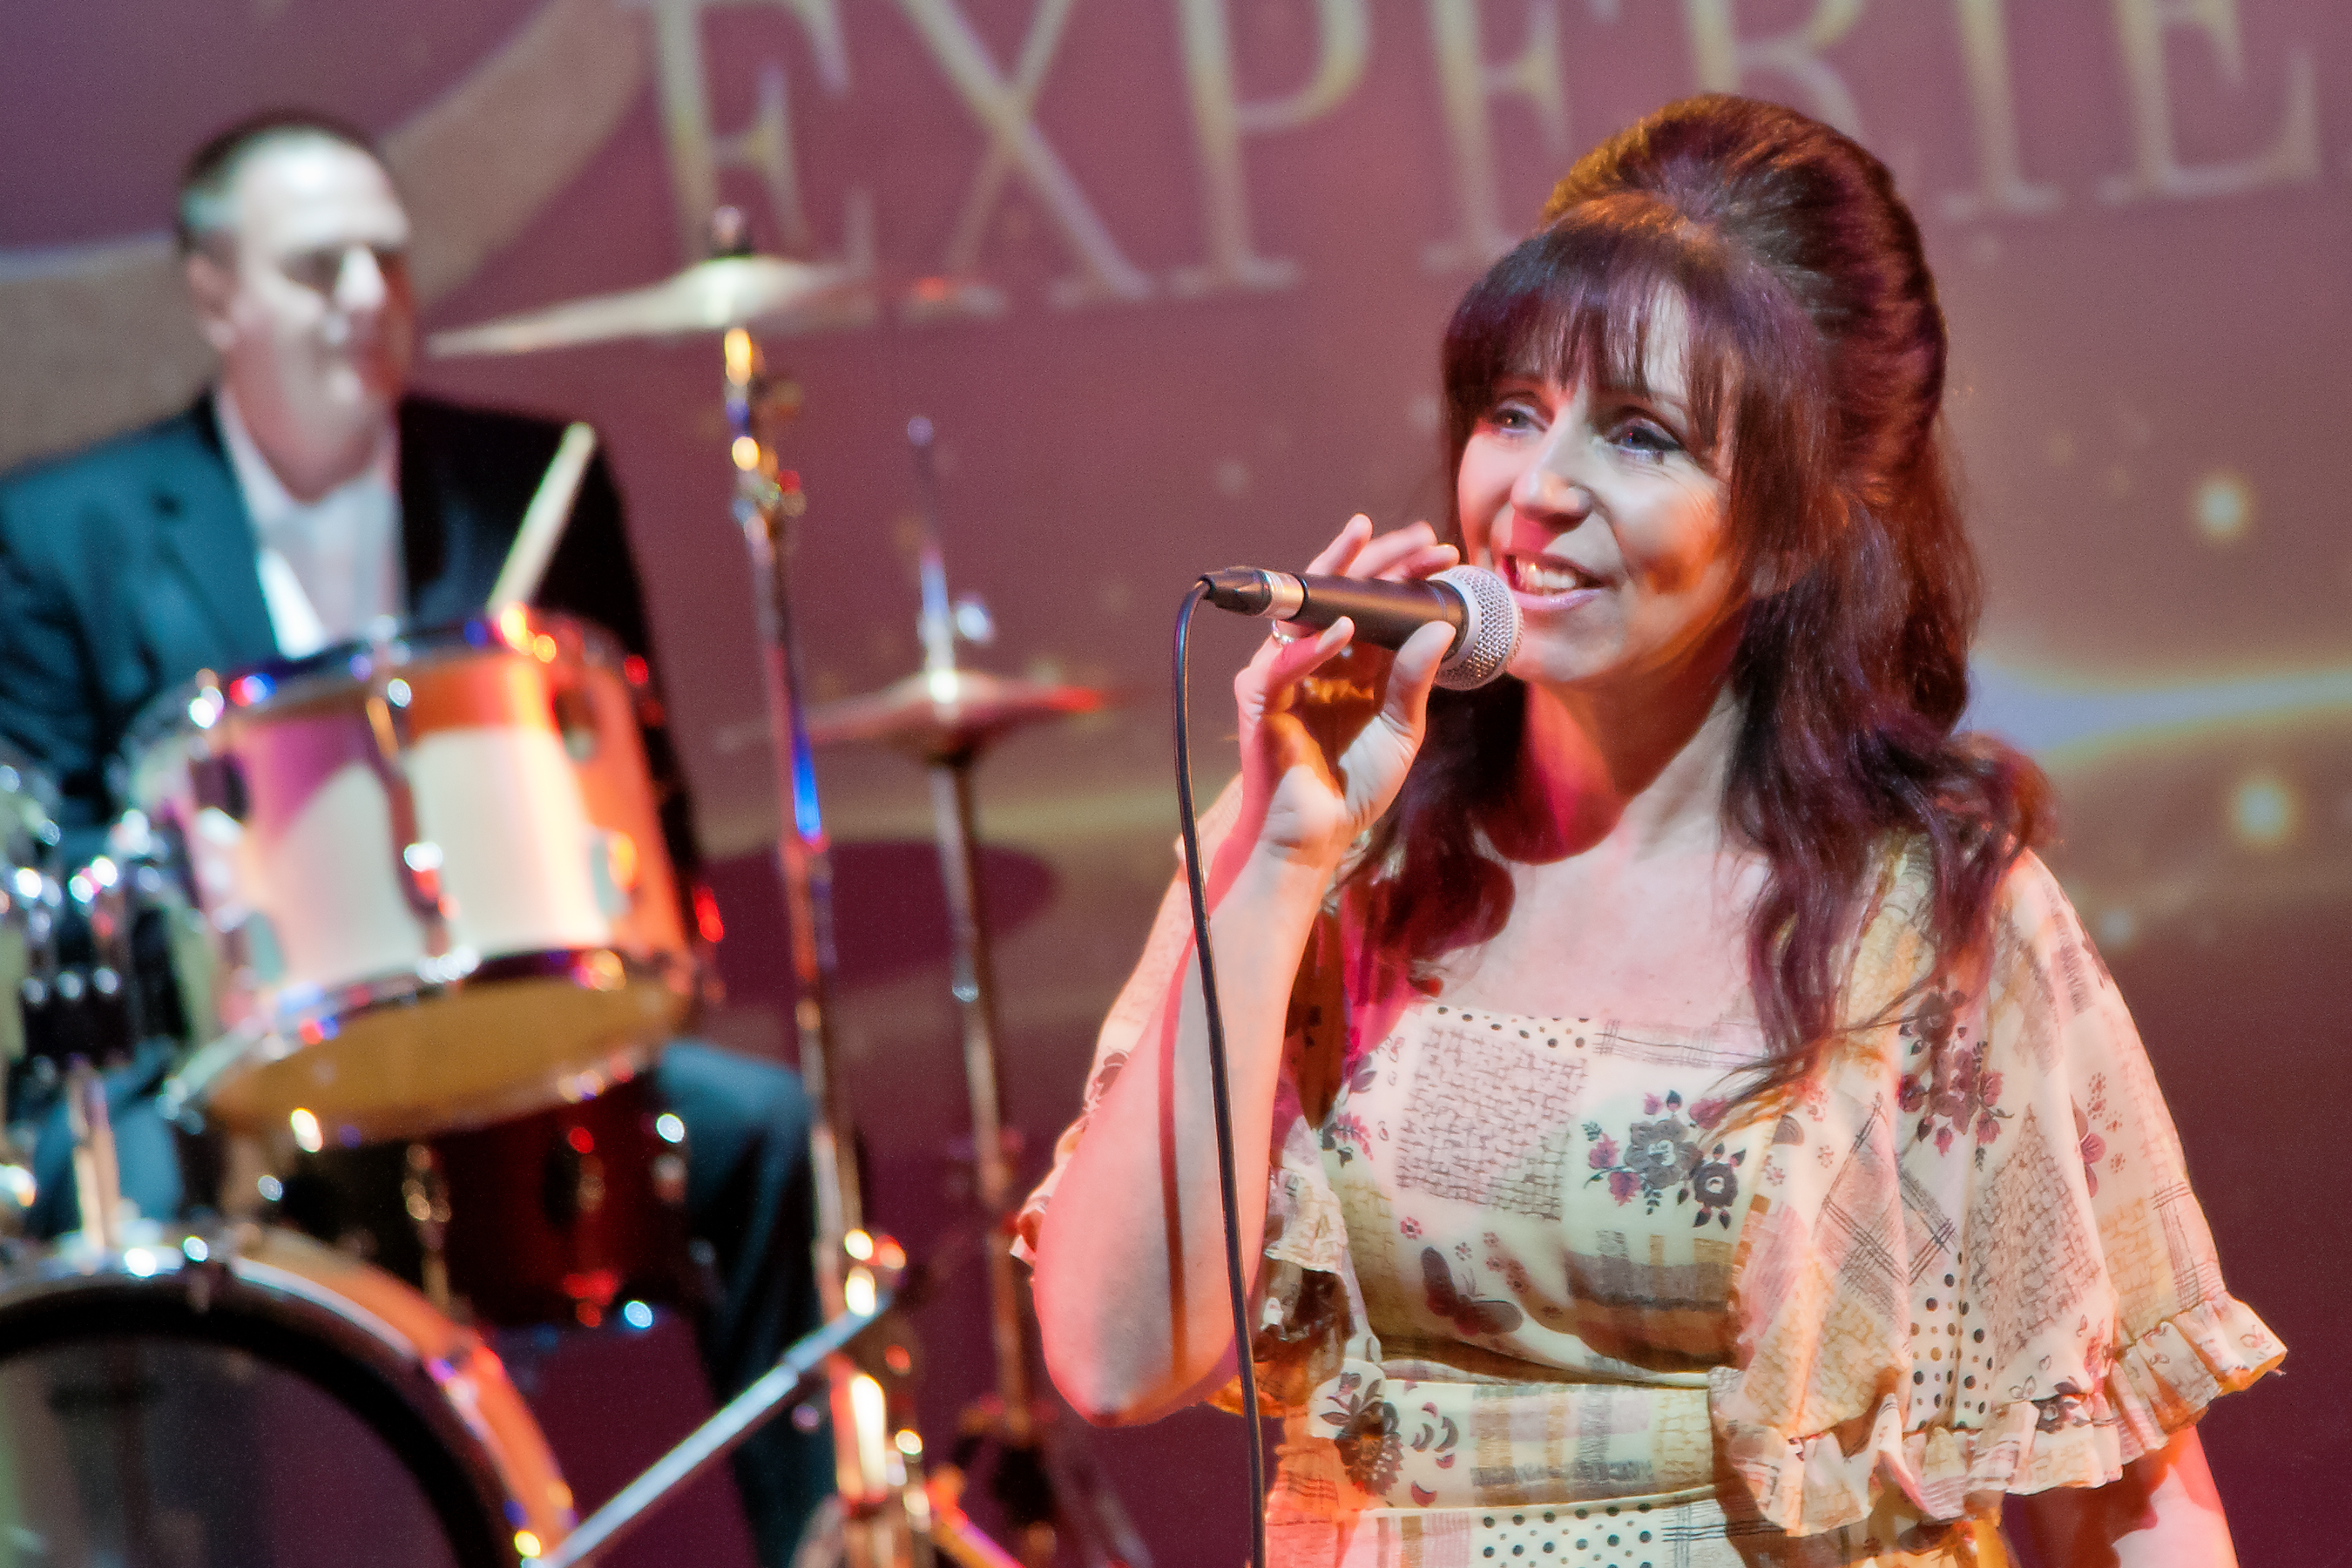 Making You Feel 'Top of the World' With The Carpenters Experience